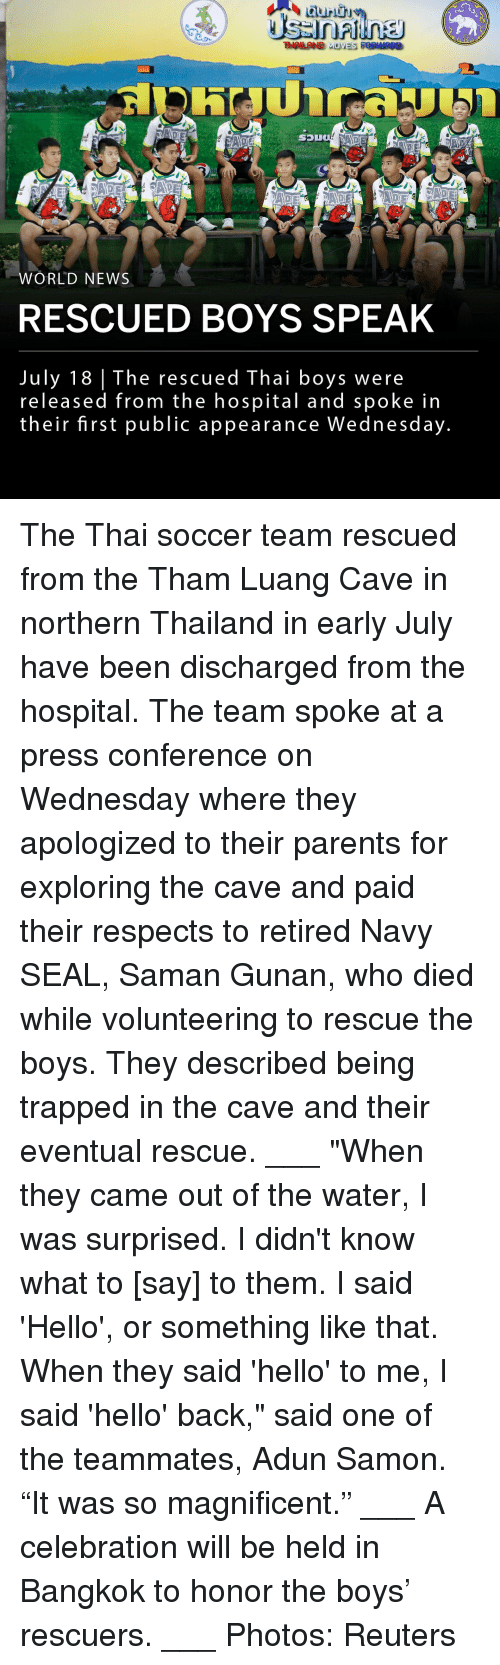 "Hello, Memes, and News: THAILAND  WORLD NEWS  RESCUED BOYS SPEAK  July 18 The rescued Thai boys were  released from the hospital and spoke in  their first public appearance Wednesday The Thai soccer team rescued from the Tham Luang Cave in northern Thailand in early July have been discharged from the hospital. The team spoke at a press conference on Wednesday where they apologized to their parents for exploring the cave and paid their respects to retired Navy SEAL, Saman Gunan, who died while volunteering to rescue the boys. They described being trapped in the cave and their eventual rescue. ___ ""When they came out of the water, I was surprised. I didn't know what to [say] to them. I said 'Hello', or something like that. When they said 'hello' to me, I said 'hello' back,"" said one of the teammates, Adun Samon. ""It was so magnificent."" ___ A celebration will be held in Bangkok to honor the boys' rescuers. ___ Photos: Reuters"